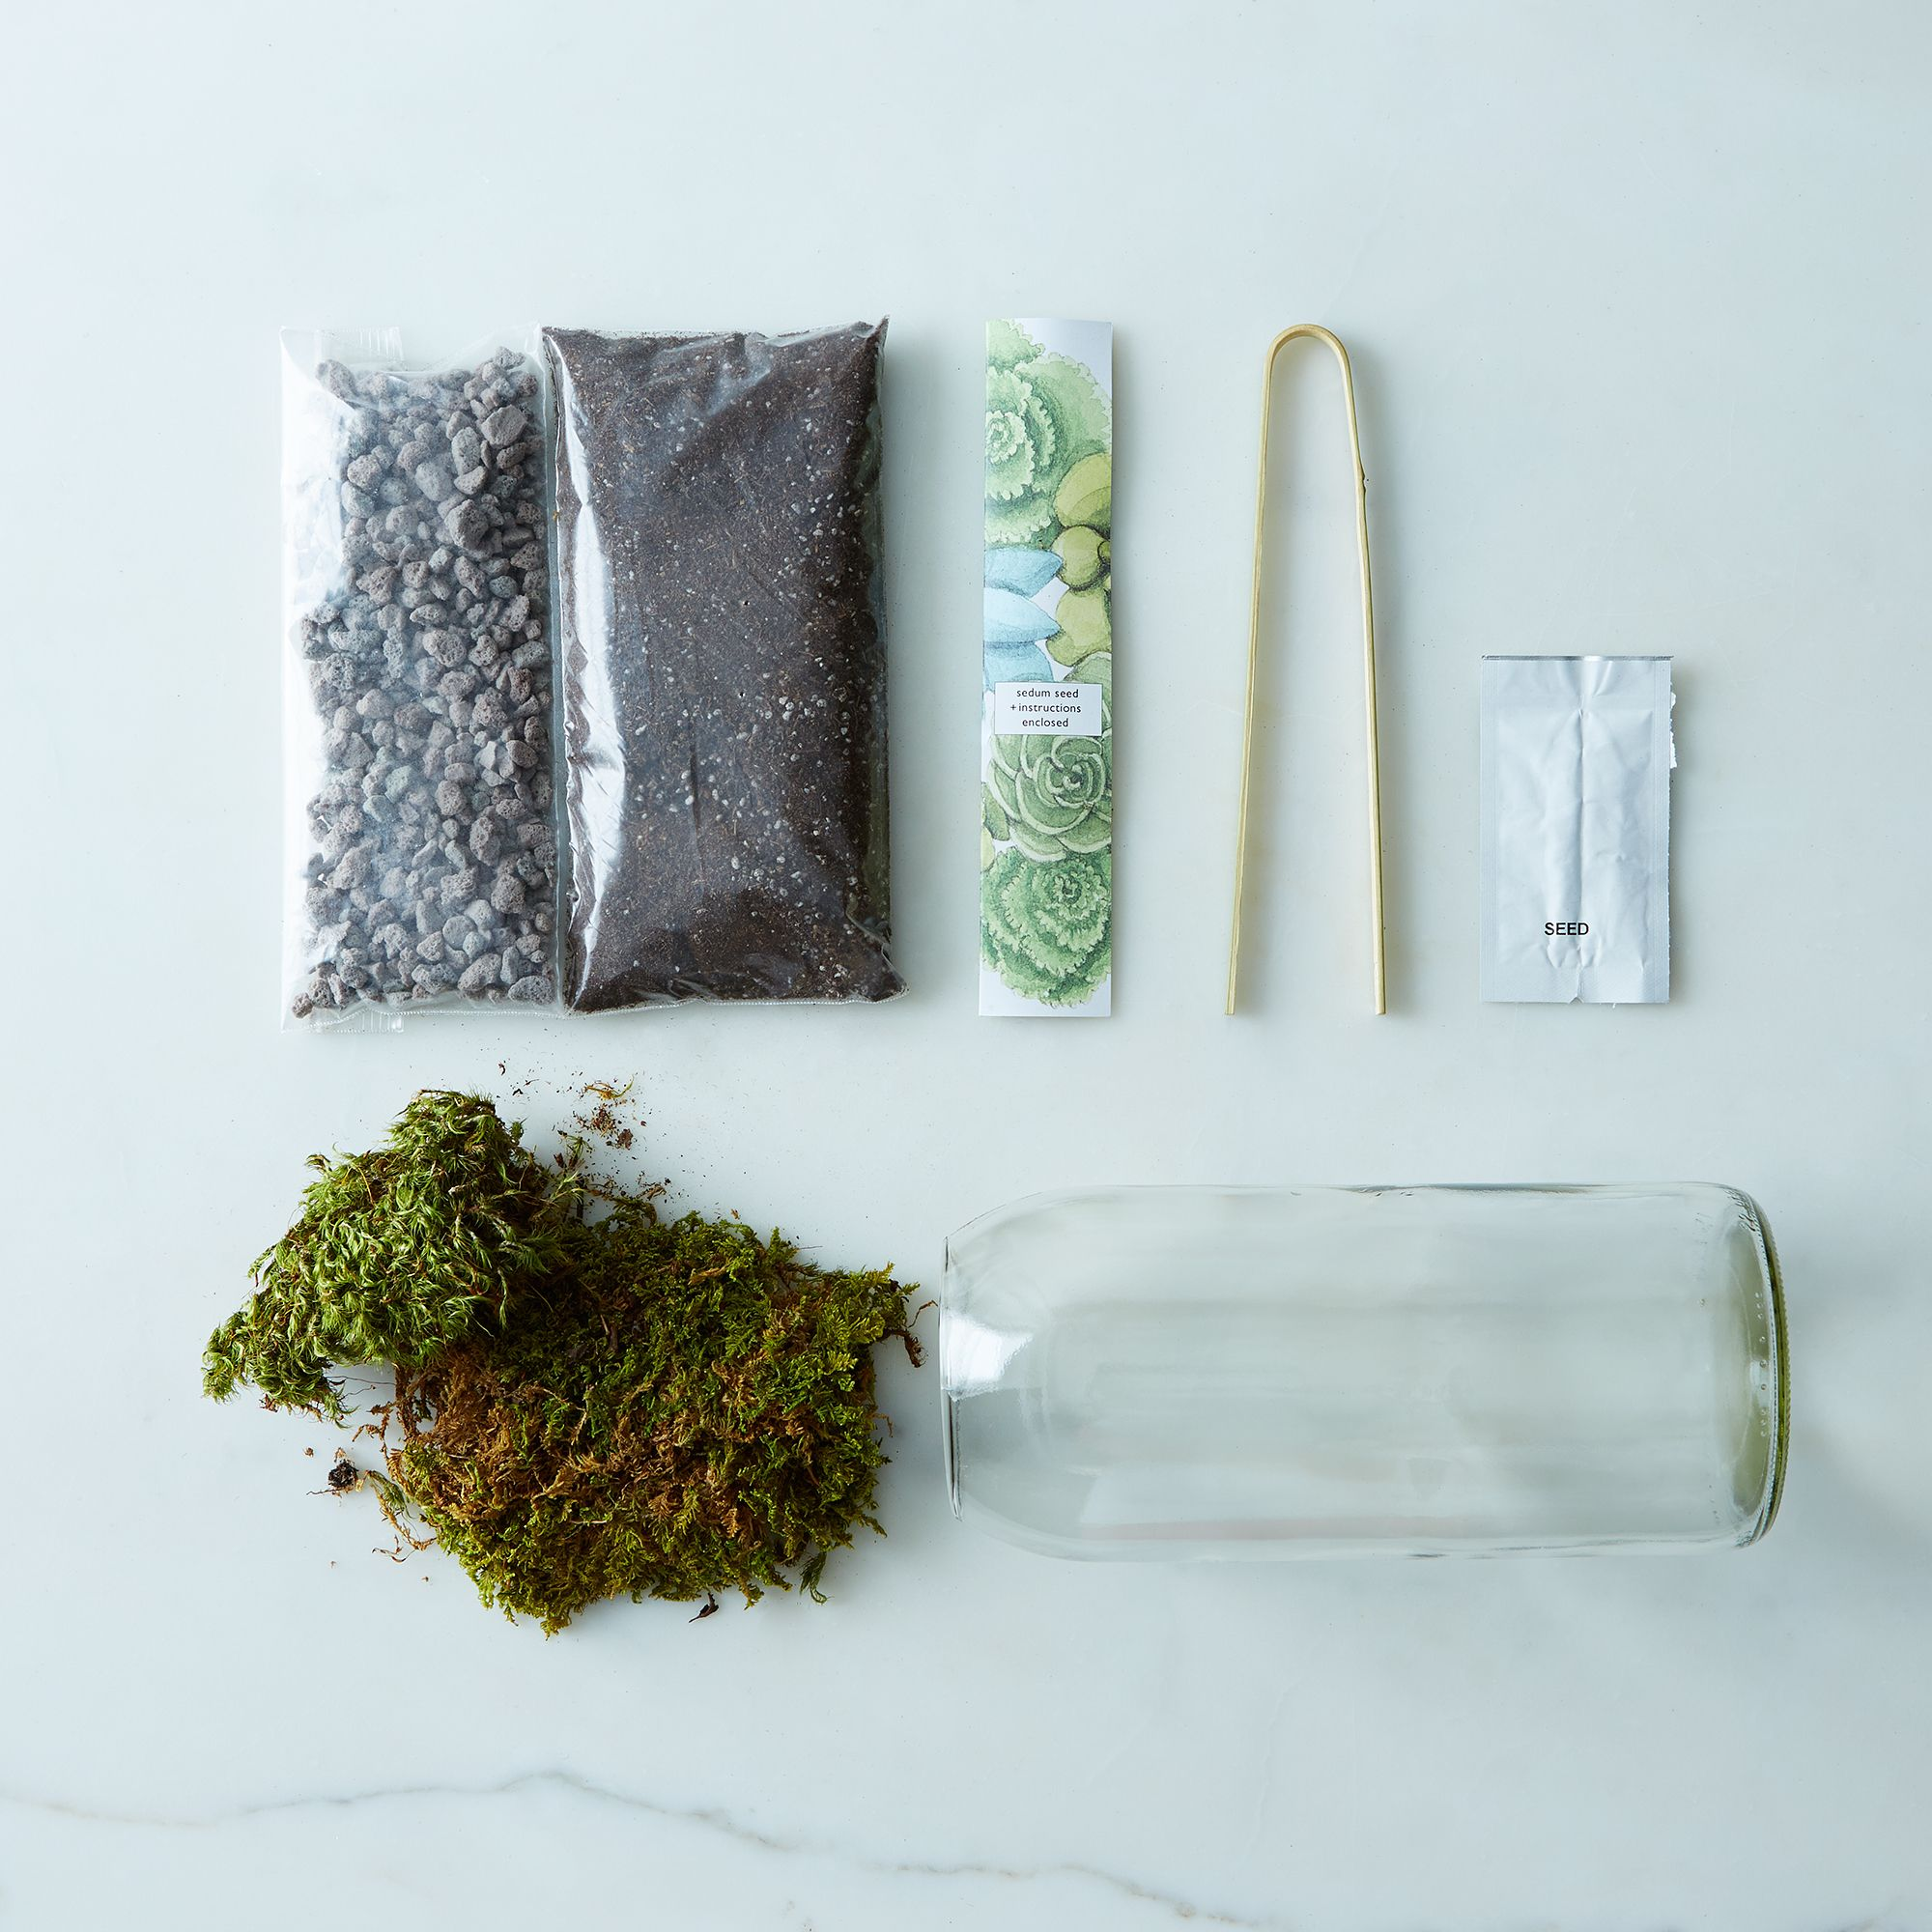 8768a046 6eef 49a8 becd ae96c563bd9b  potting shed creations moss sedum terrarium bottle provisions mark weinberg 03 09 14 0062 silo